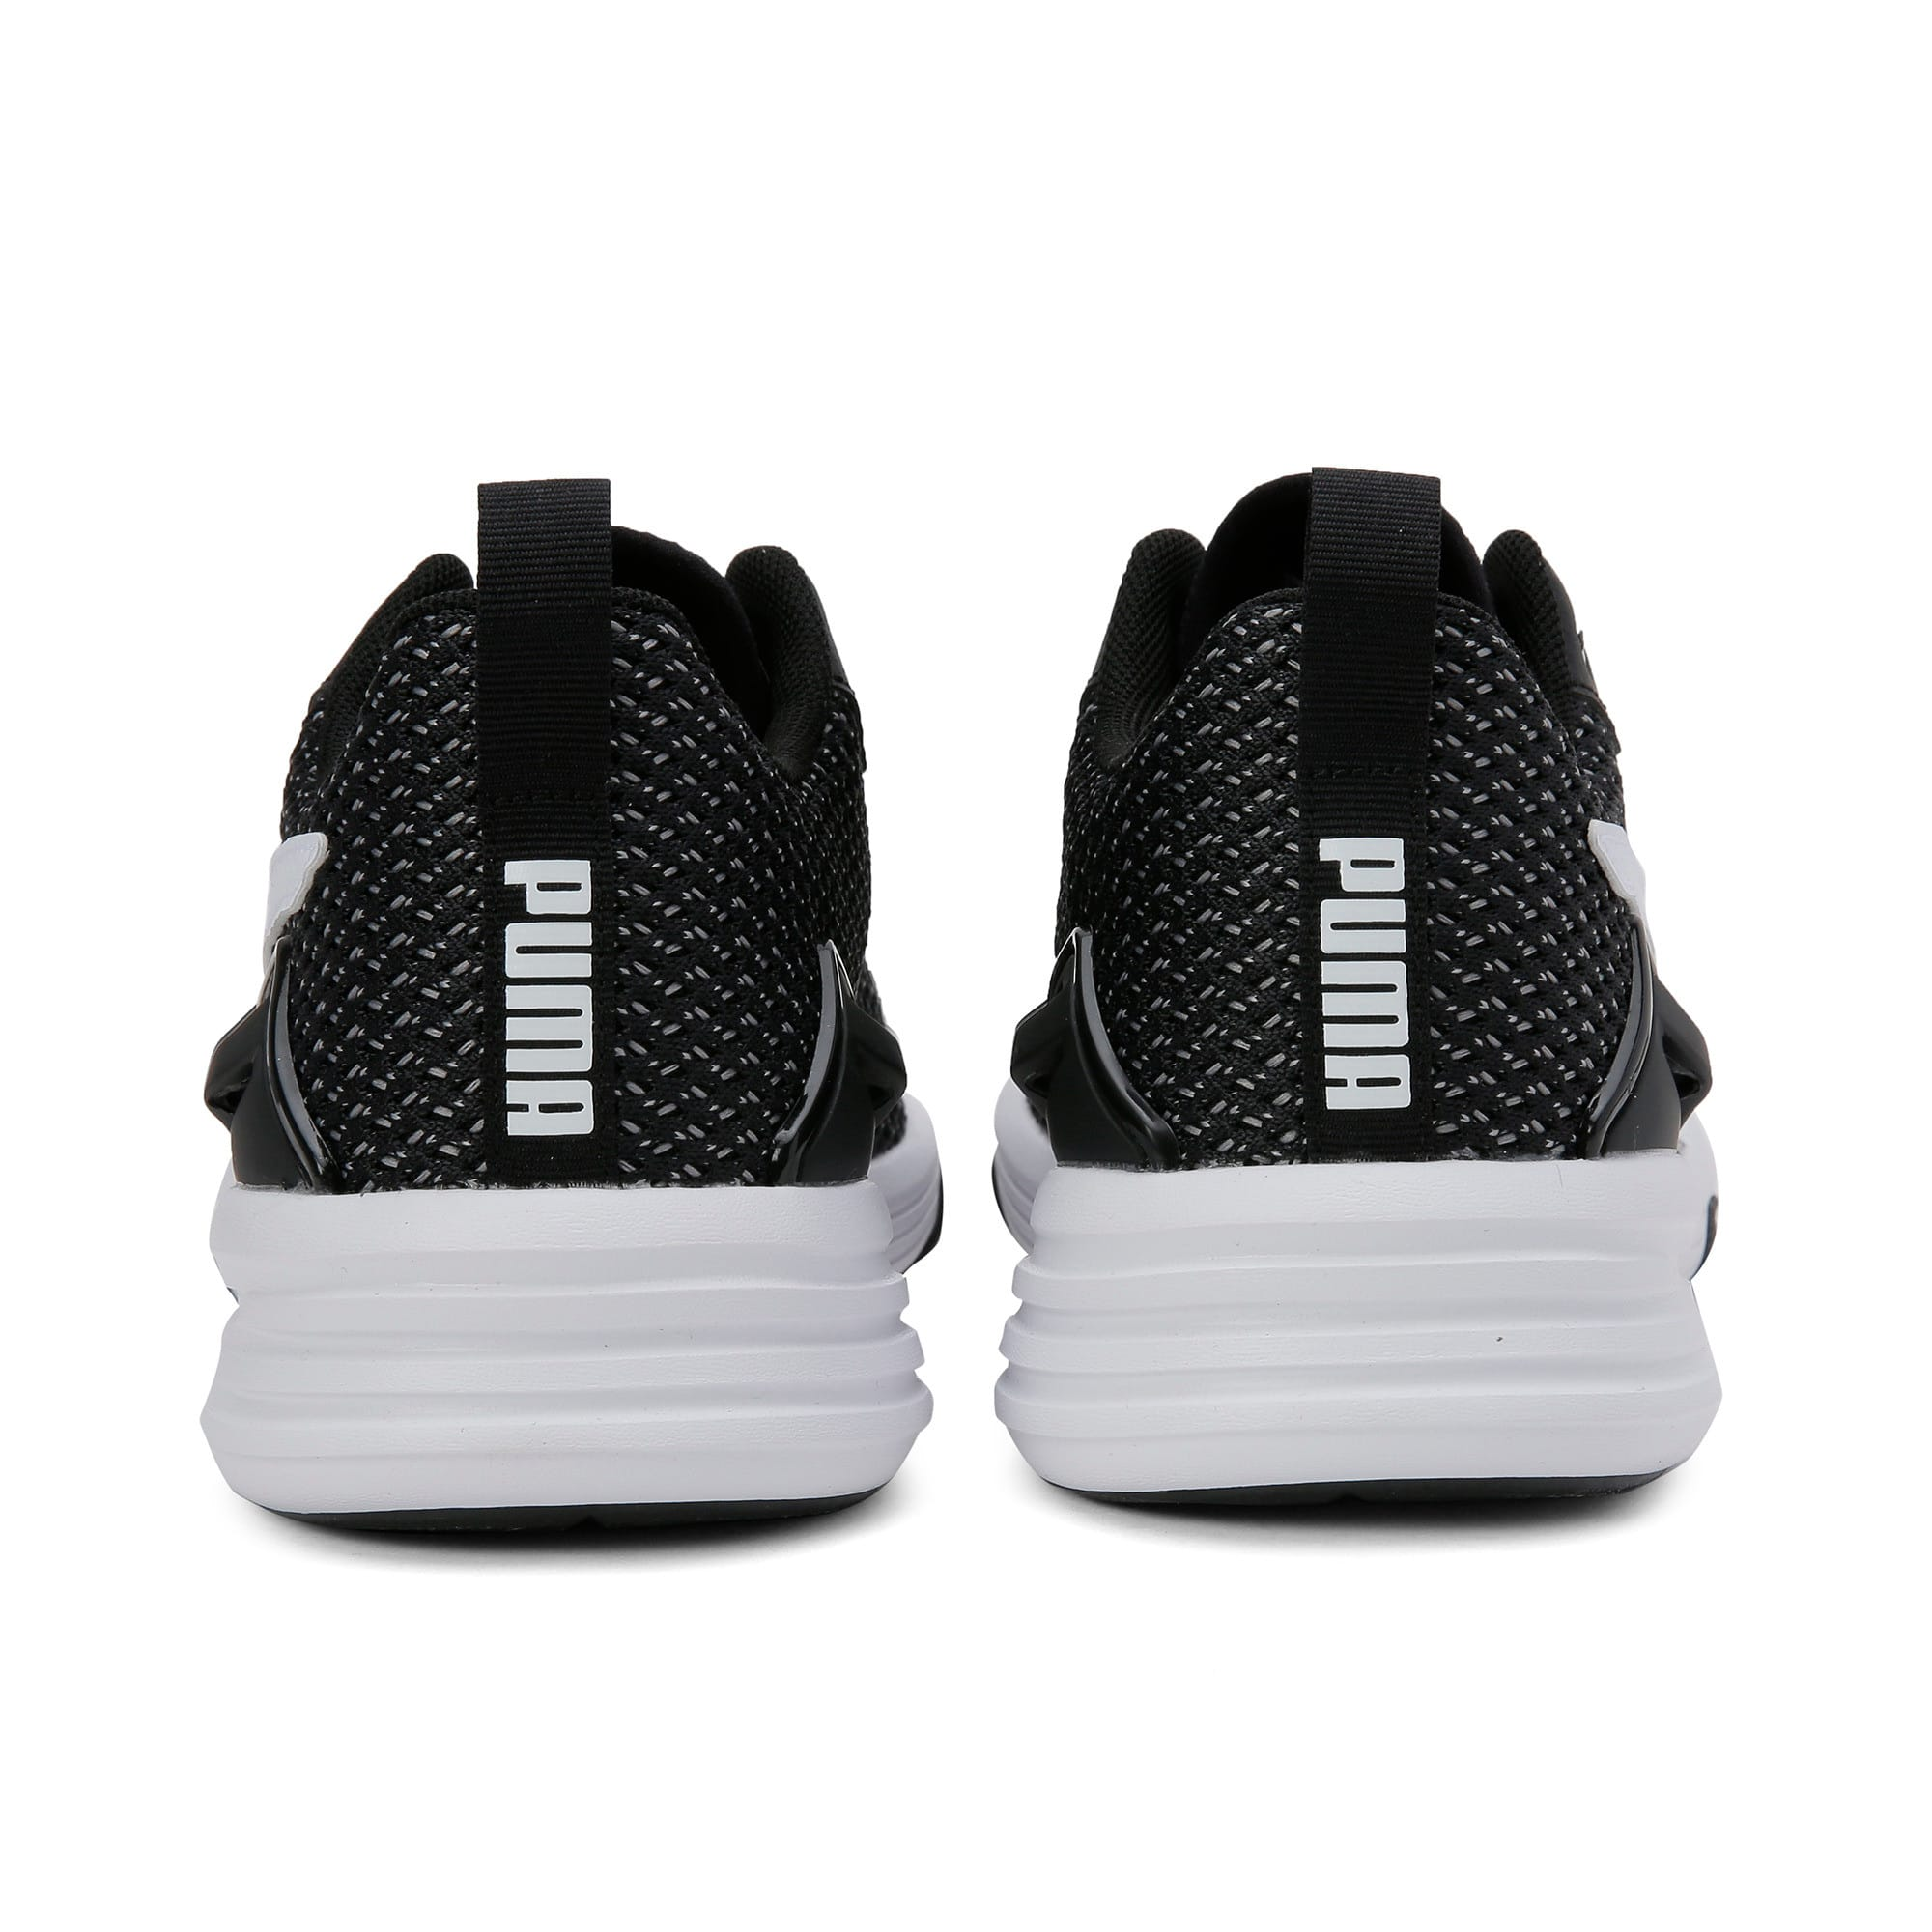 Thumbnail 5 of Aura XT Men's Trainers, Puma Black-Puma White, medium-IND